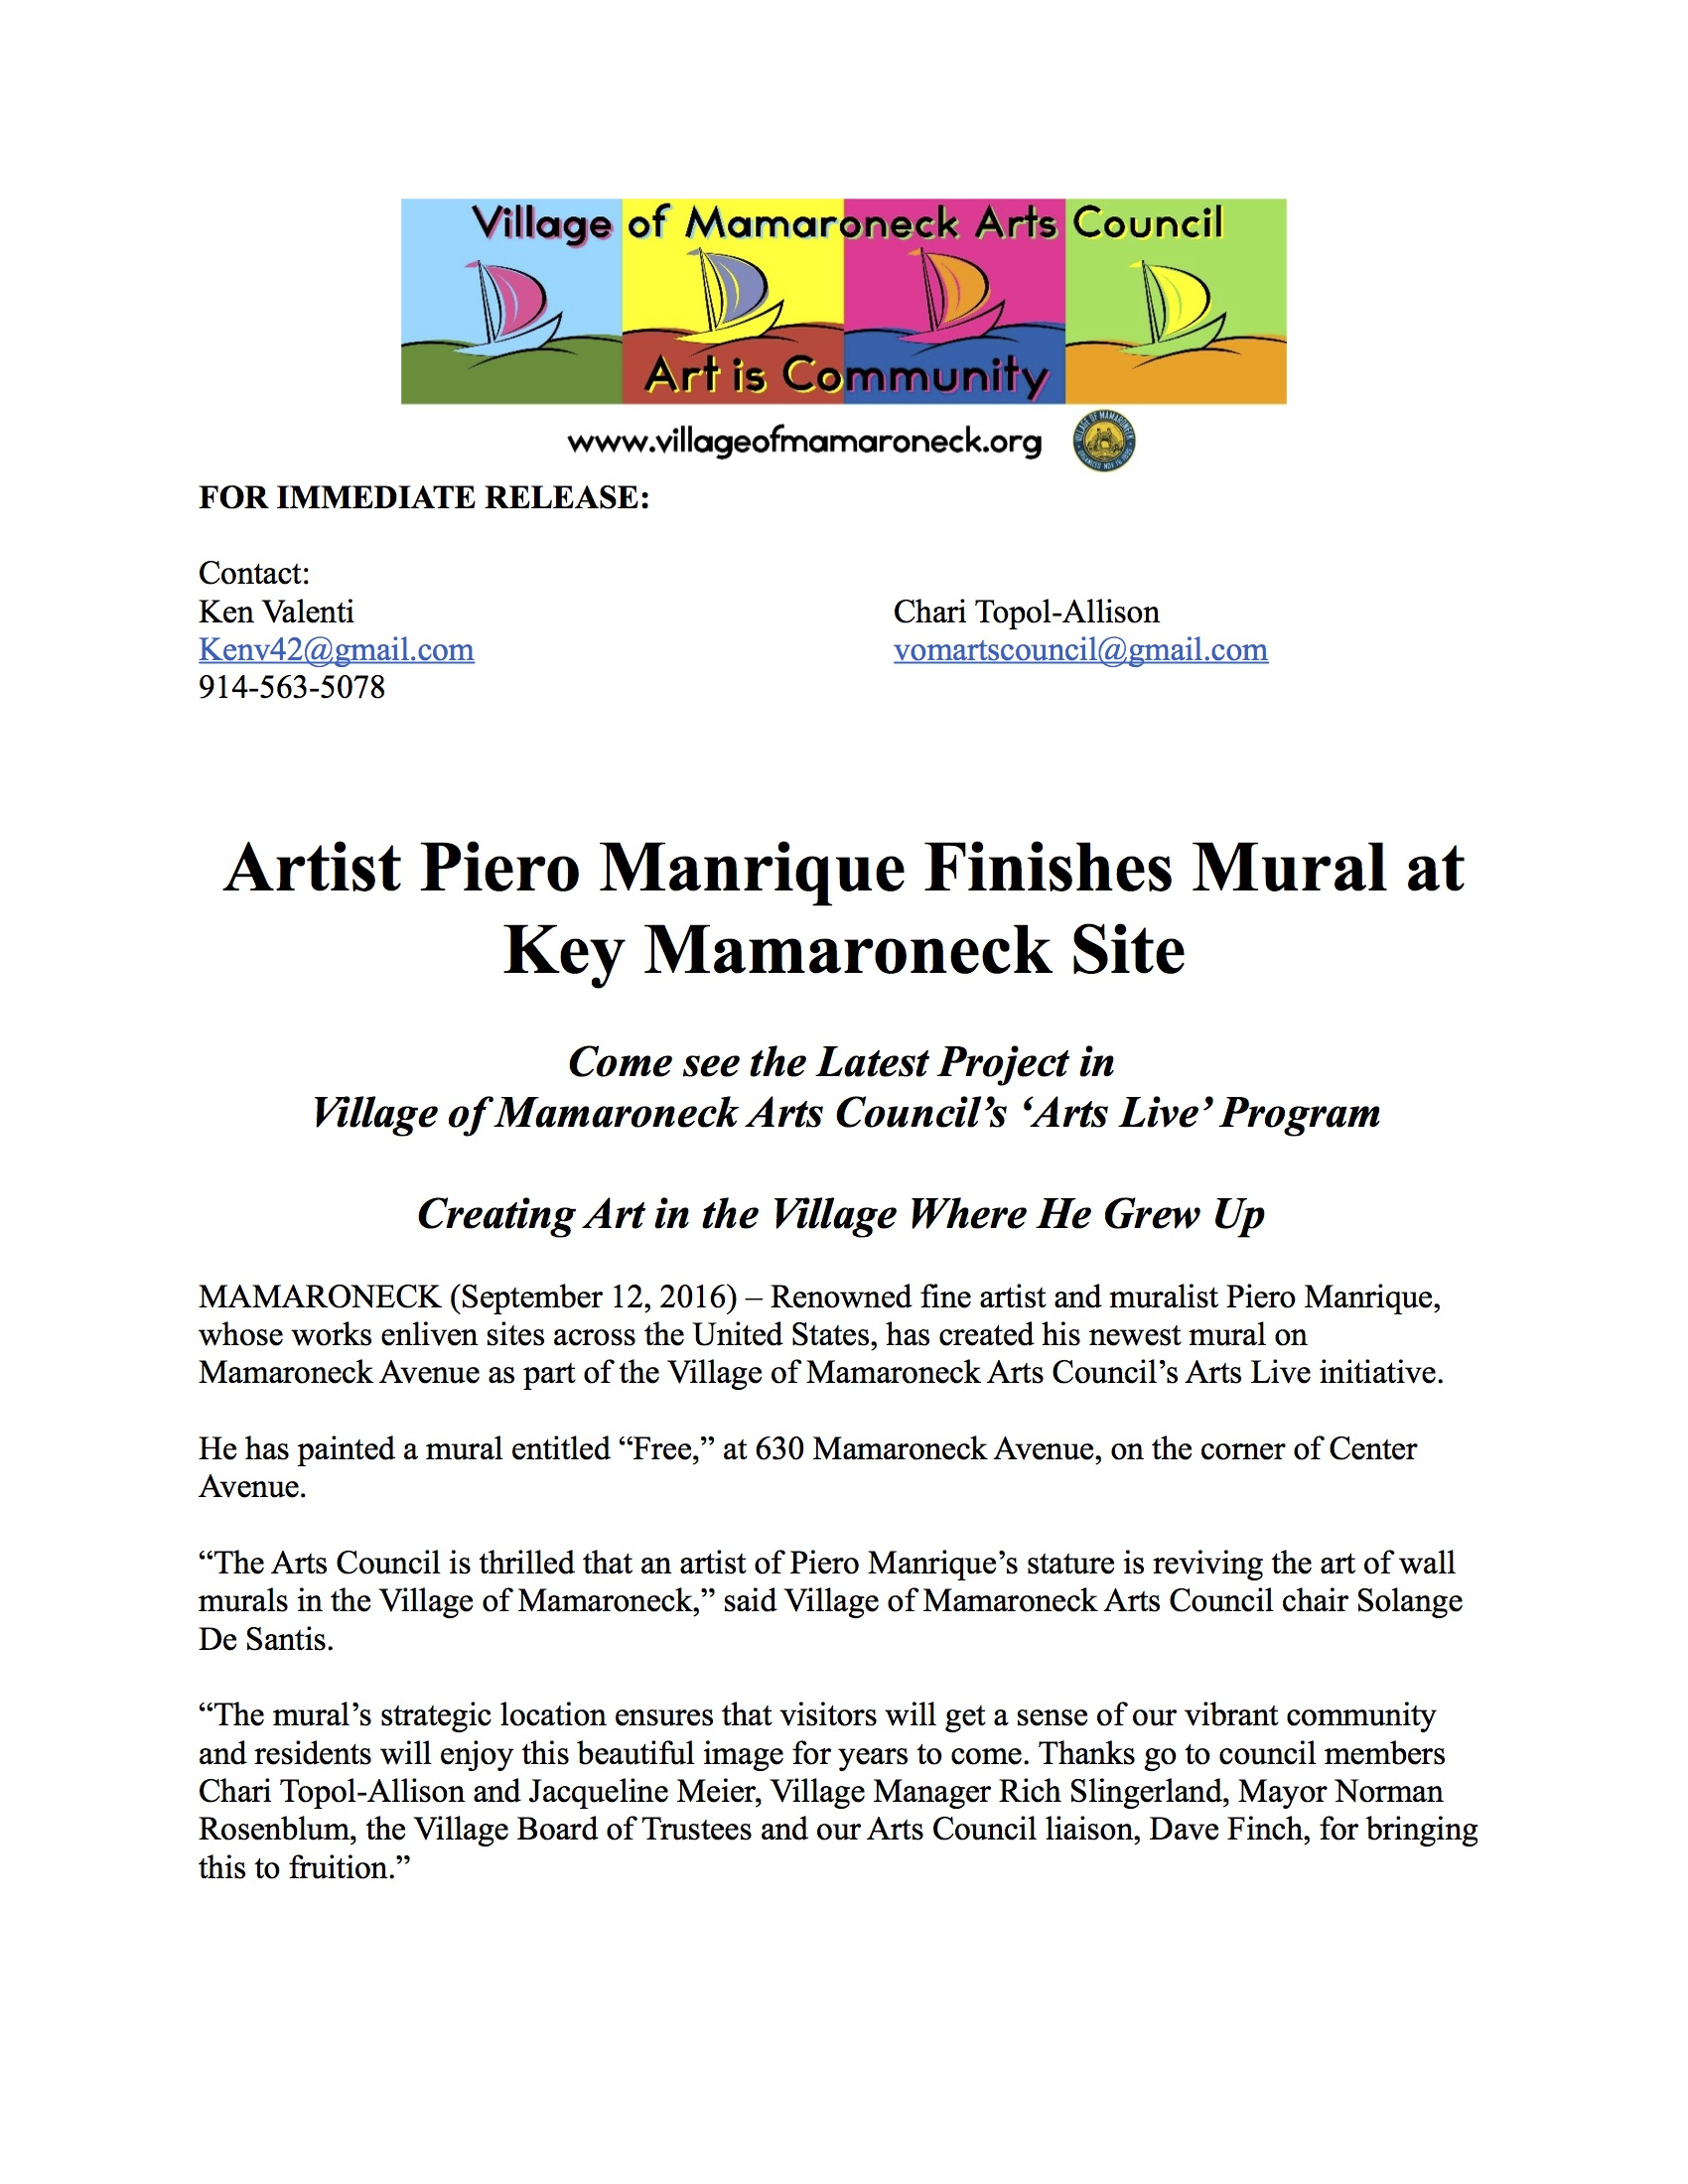 Village of Mamaroneck Arts Council Mural | ArtsWestchester